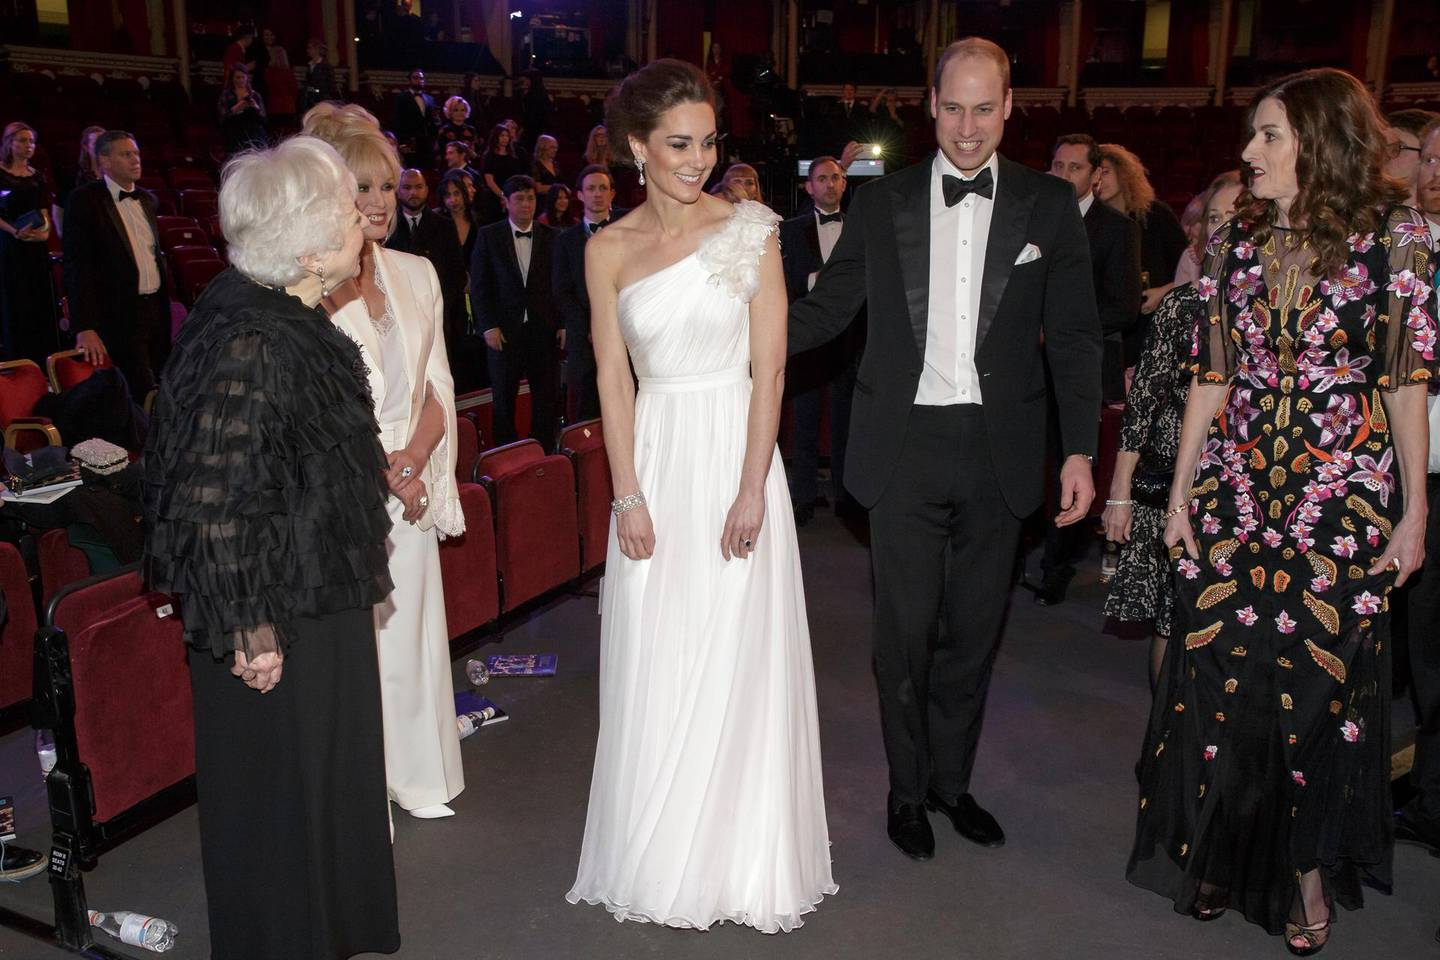 Britain's Prince William and Kate, Duchess of Cambridge with Thelma Schoonmaker, left, Joanna Lumley, 2nd left, and Amanda Berry CEO of BAFTA, right after the BAFTA 2019 Awards at The Royal Albert Hall in London, Sunday Feb. 10, 2019. (AP Photo/Tim Ireland, Pool)